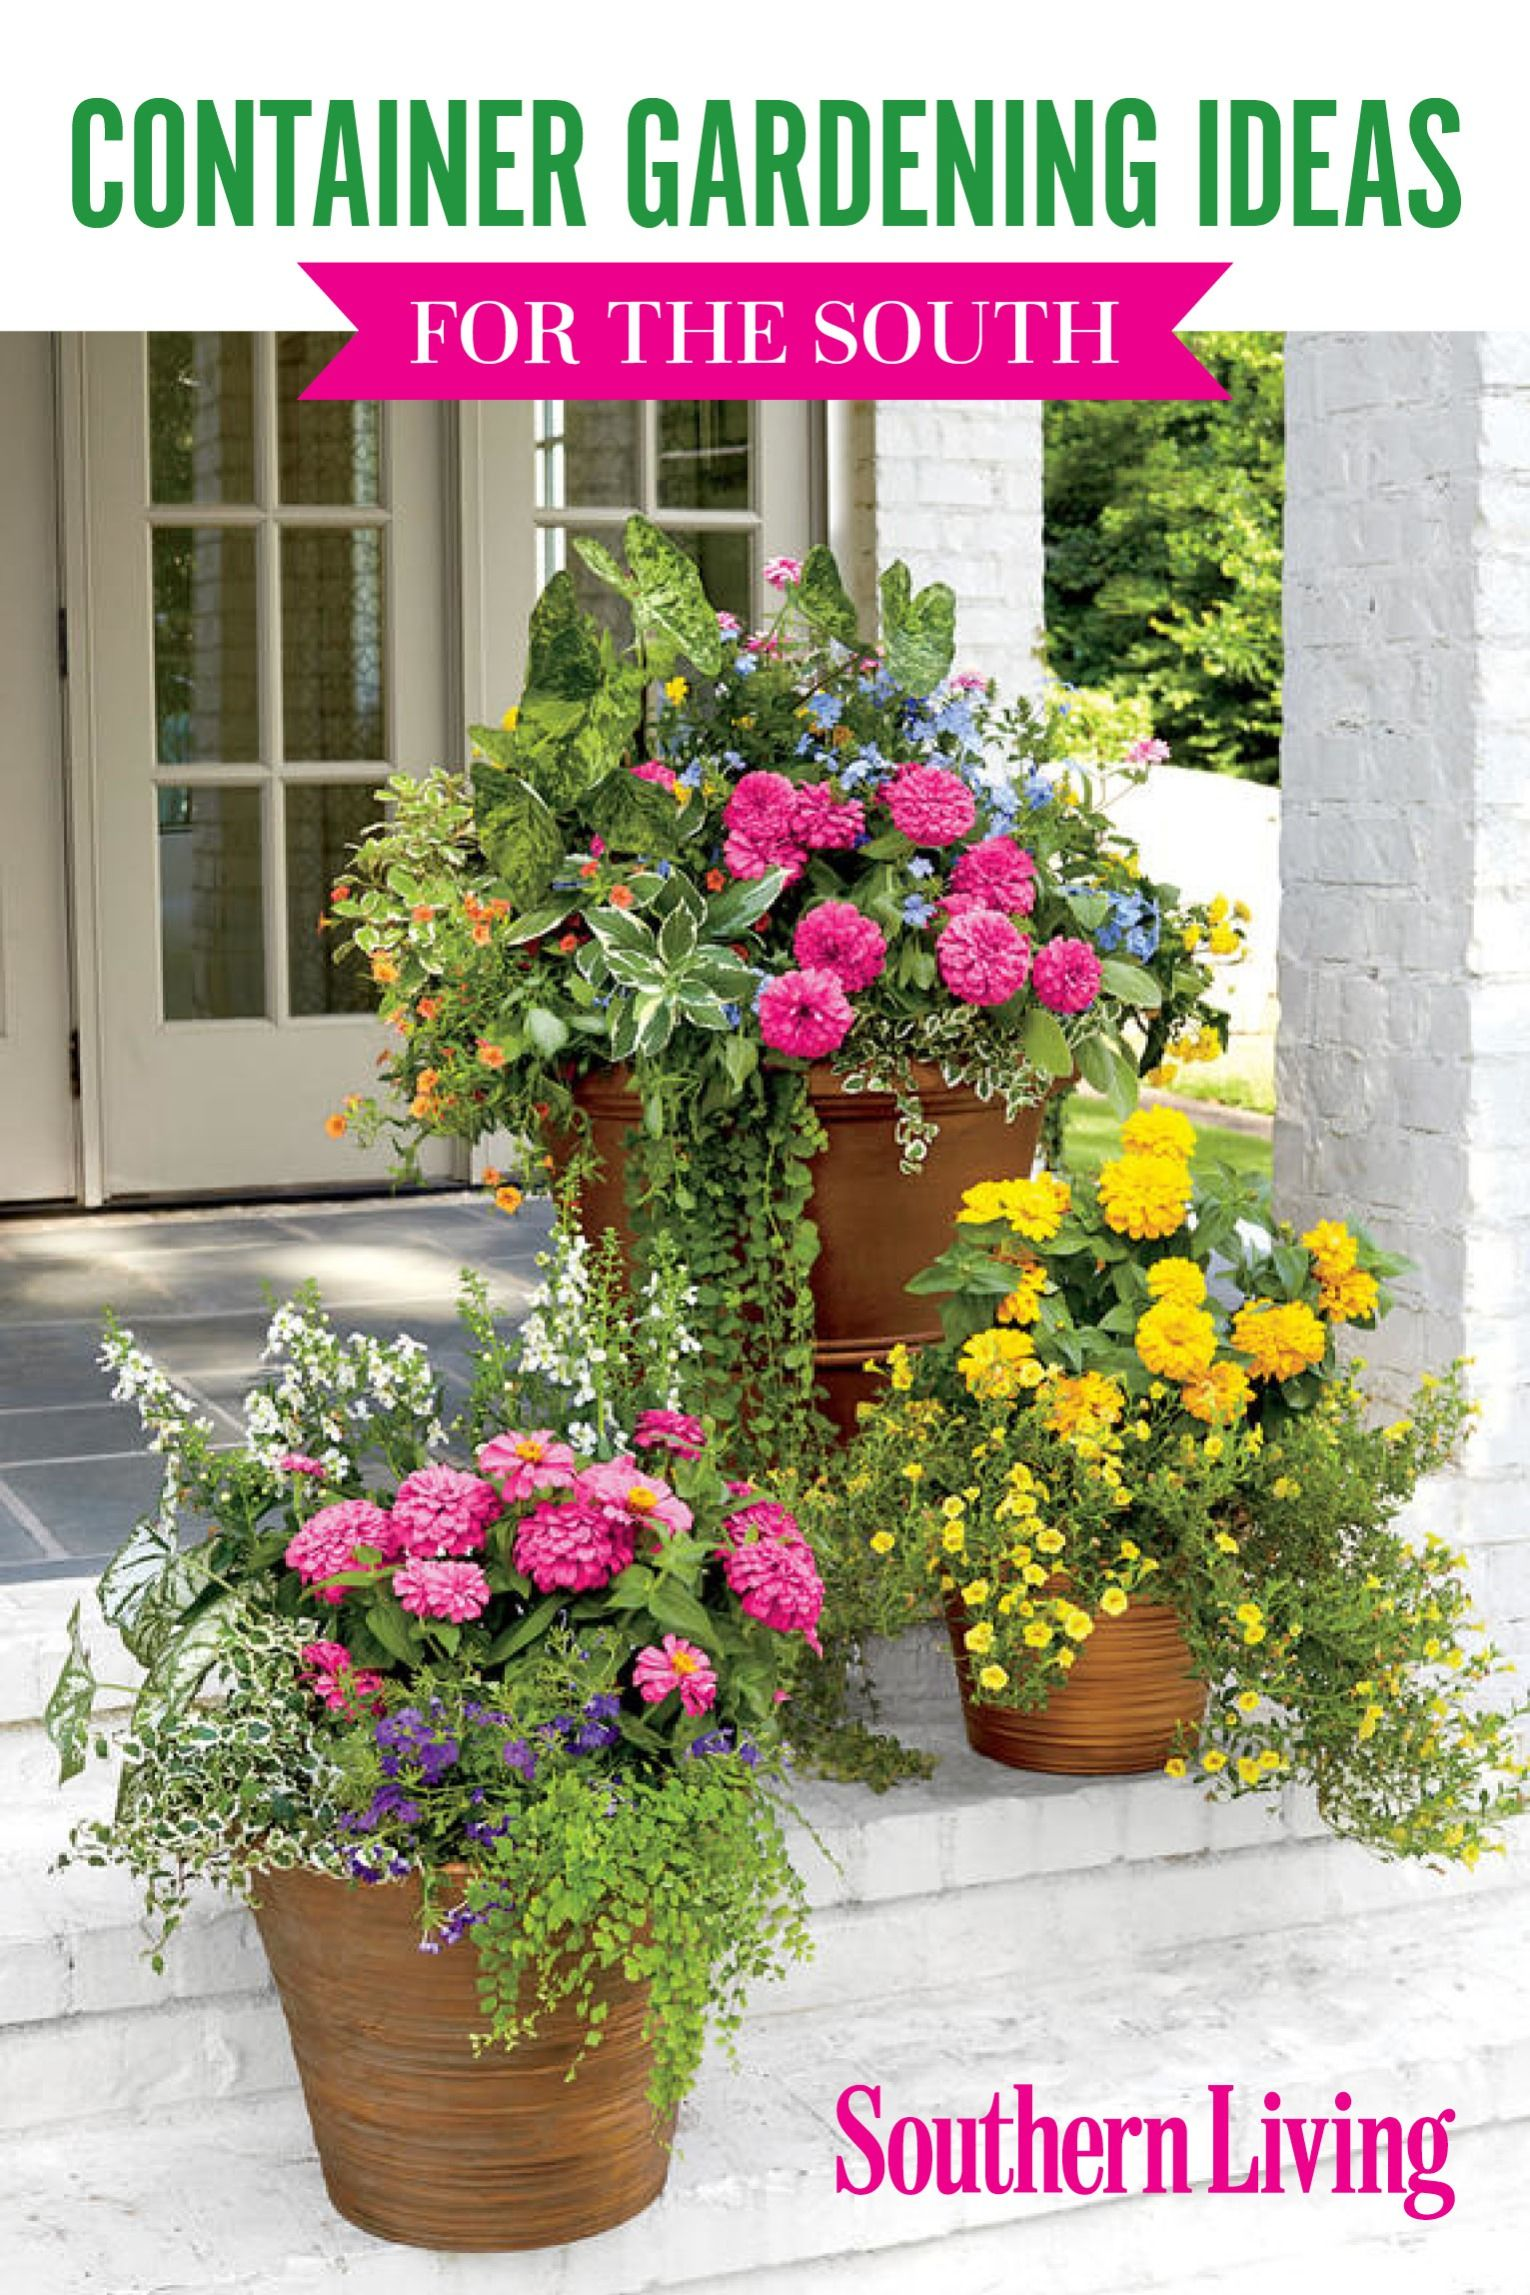 125 Container Gardening Ideas With Images Container Gardening